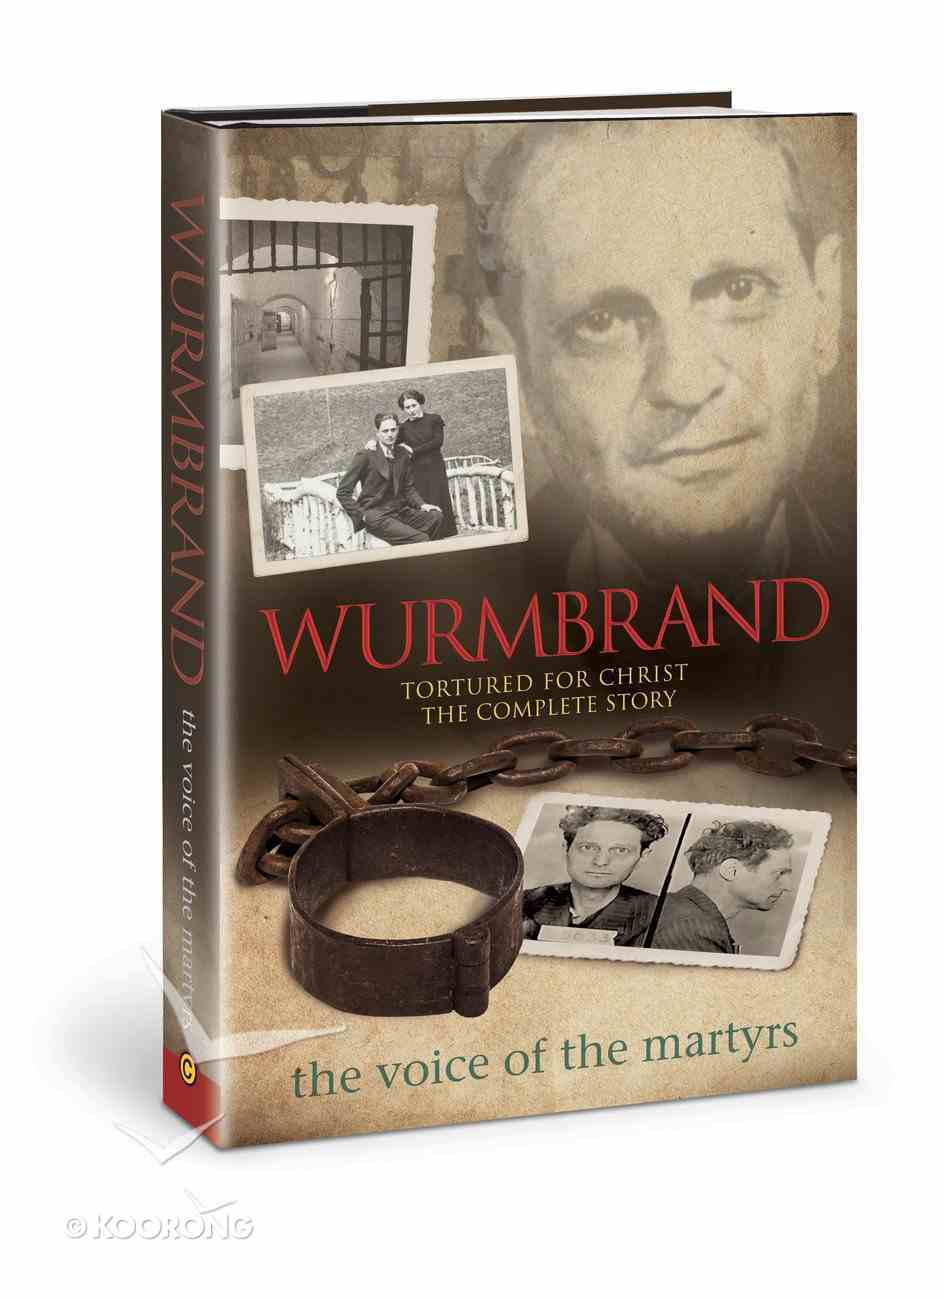 Wurmbrand: Tortured For Christ - the Complete Story Hardback